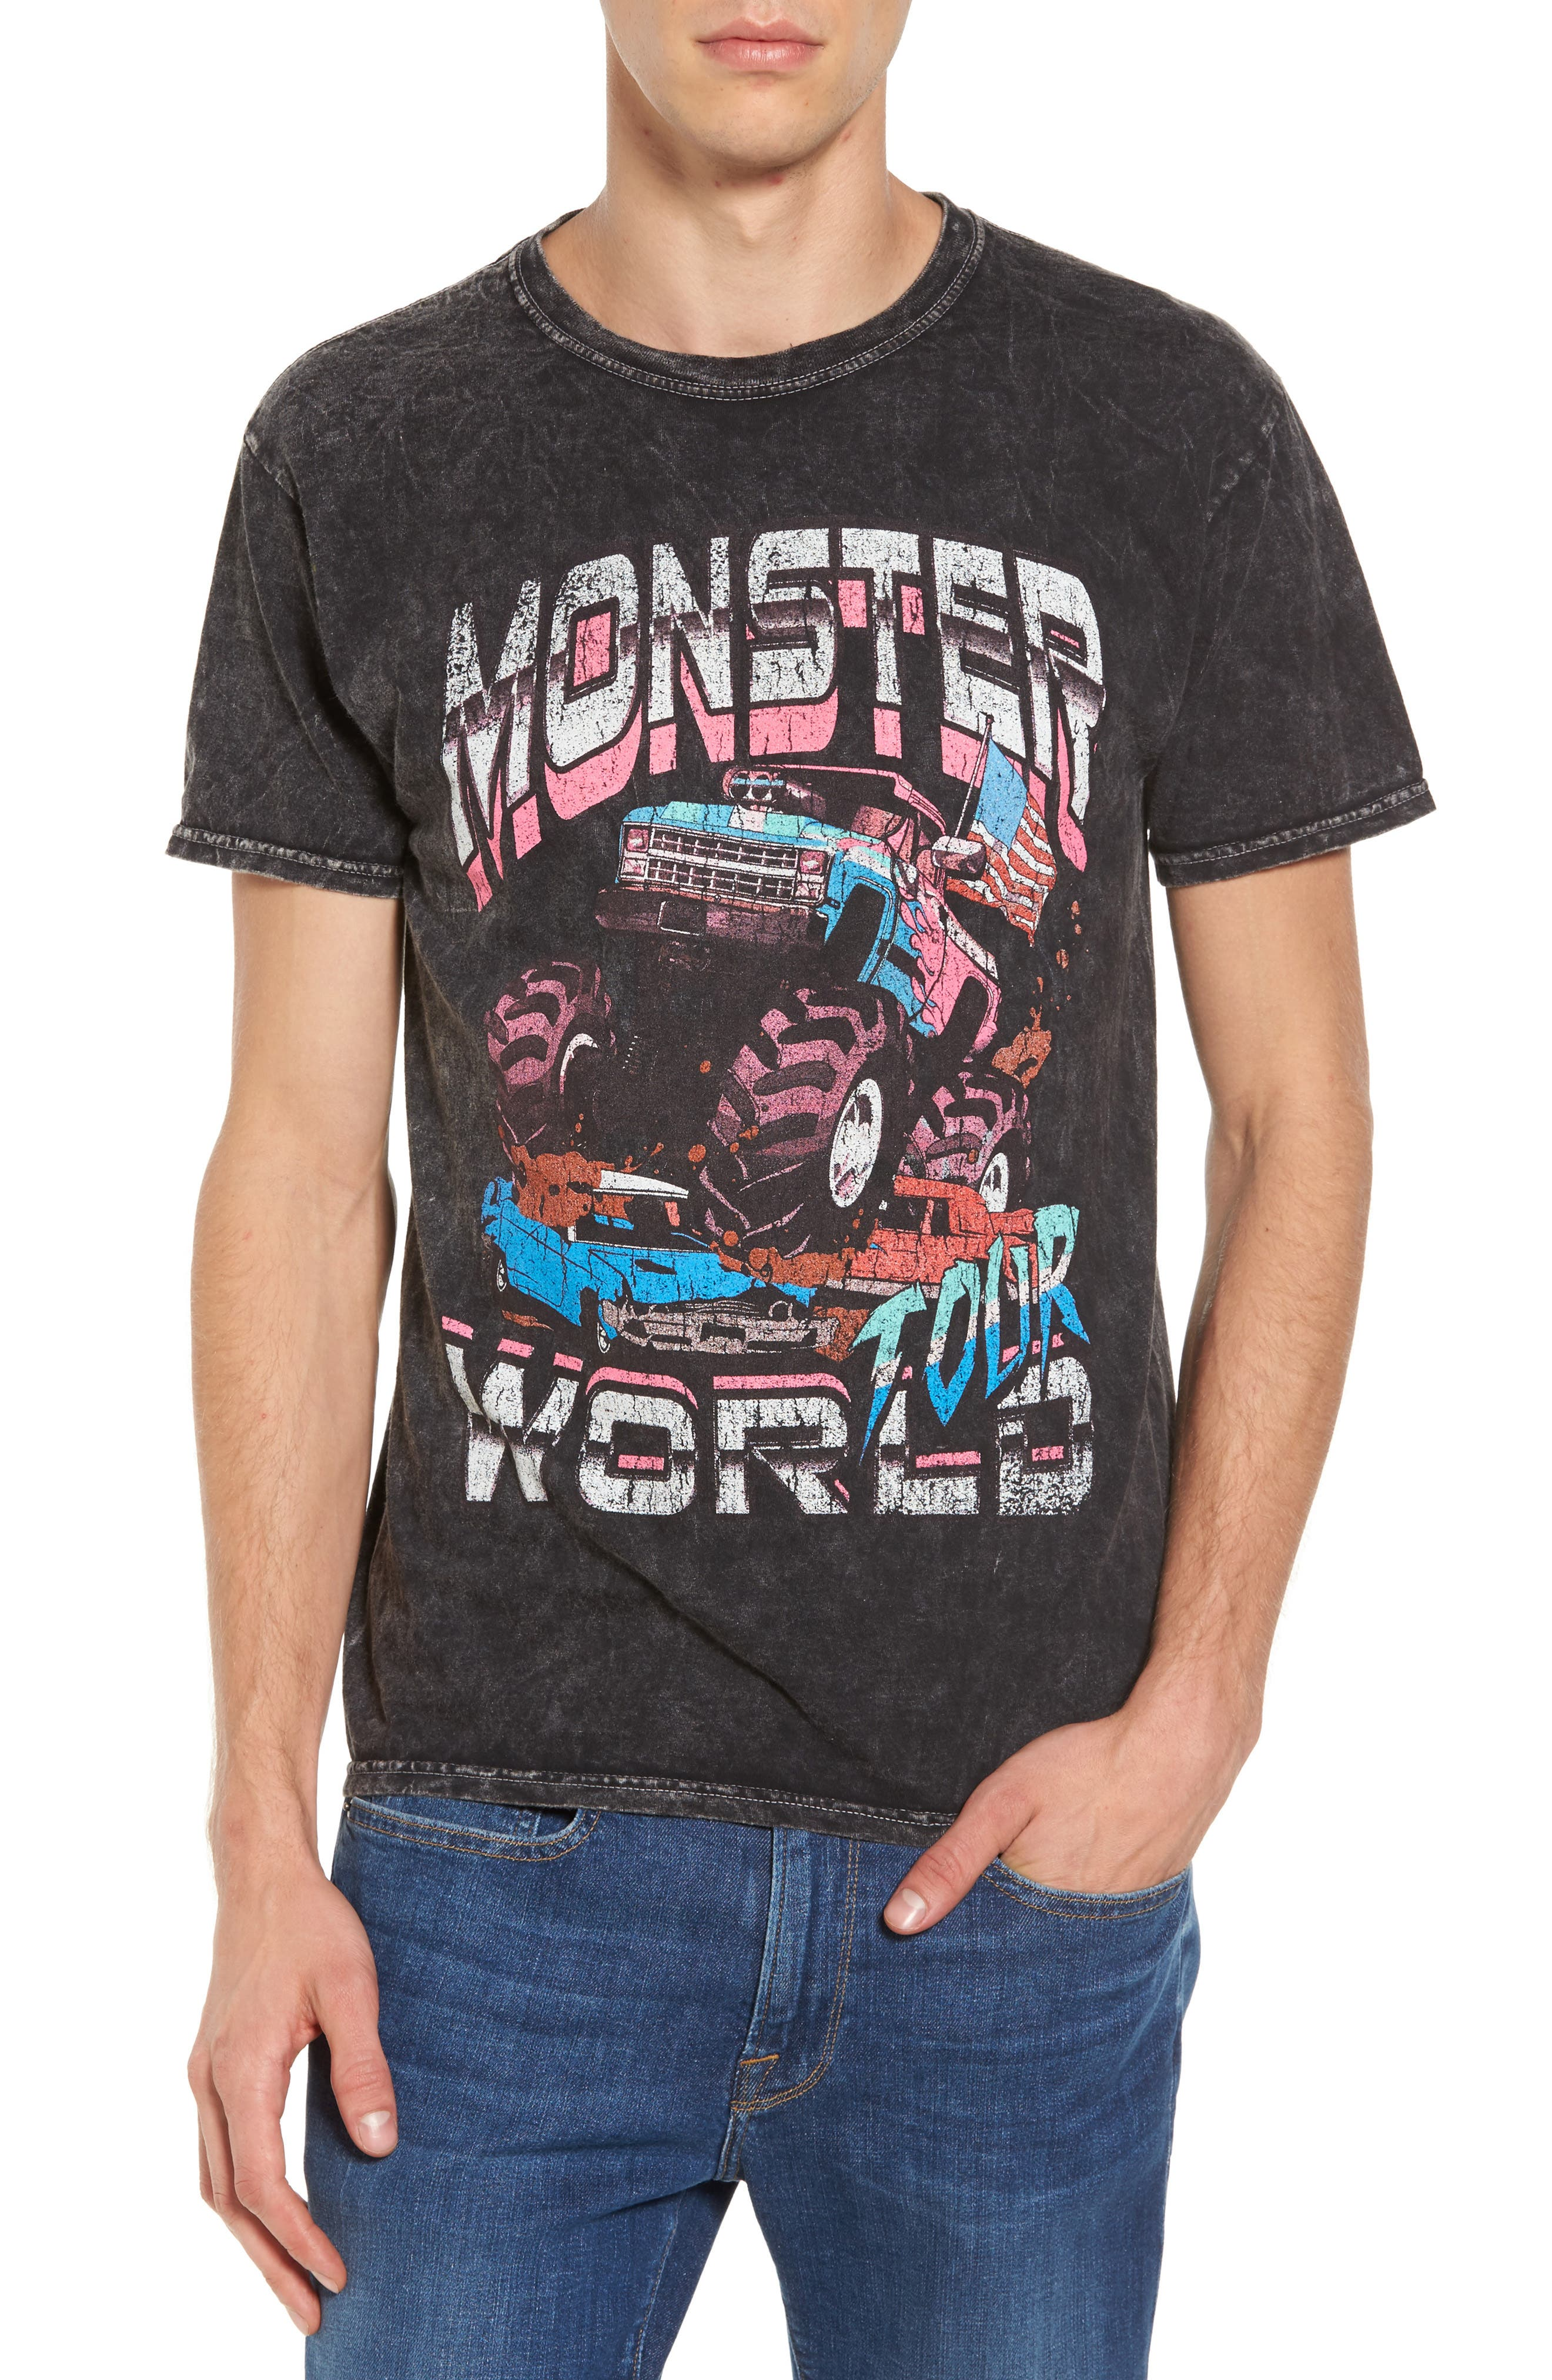 Alternate Image 1 Selected - The Rail Monster World Graphic T-Shirt